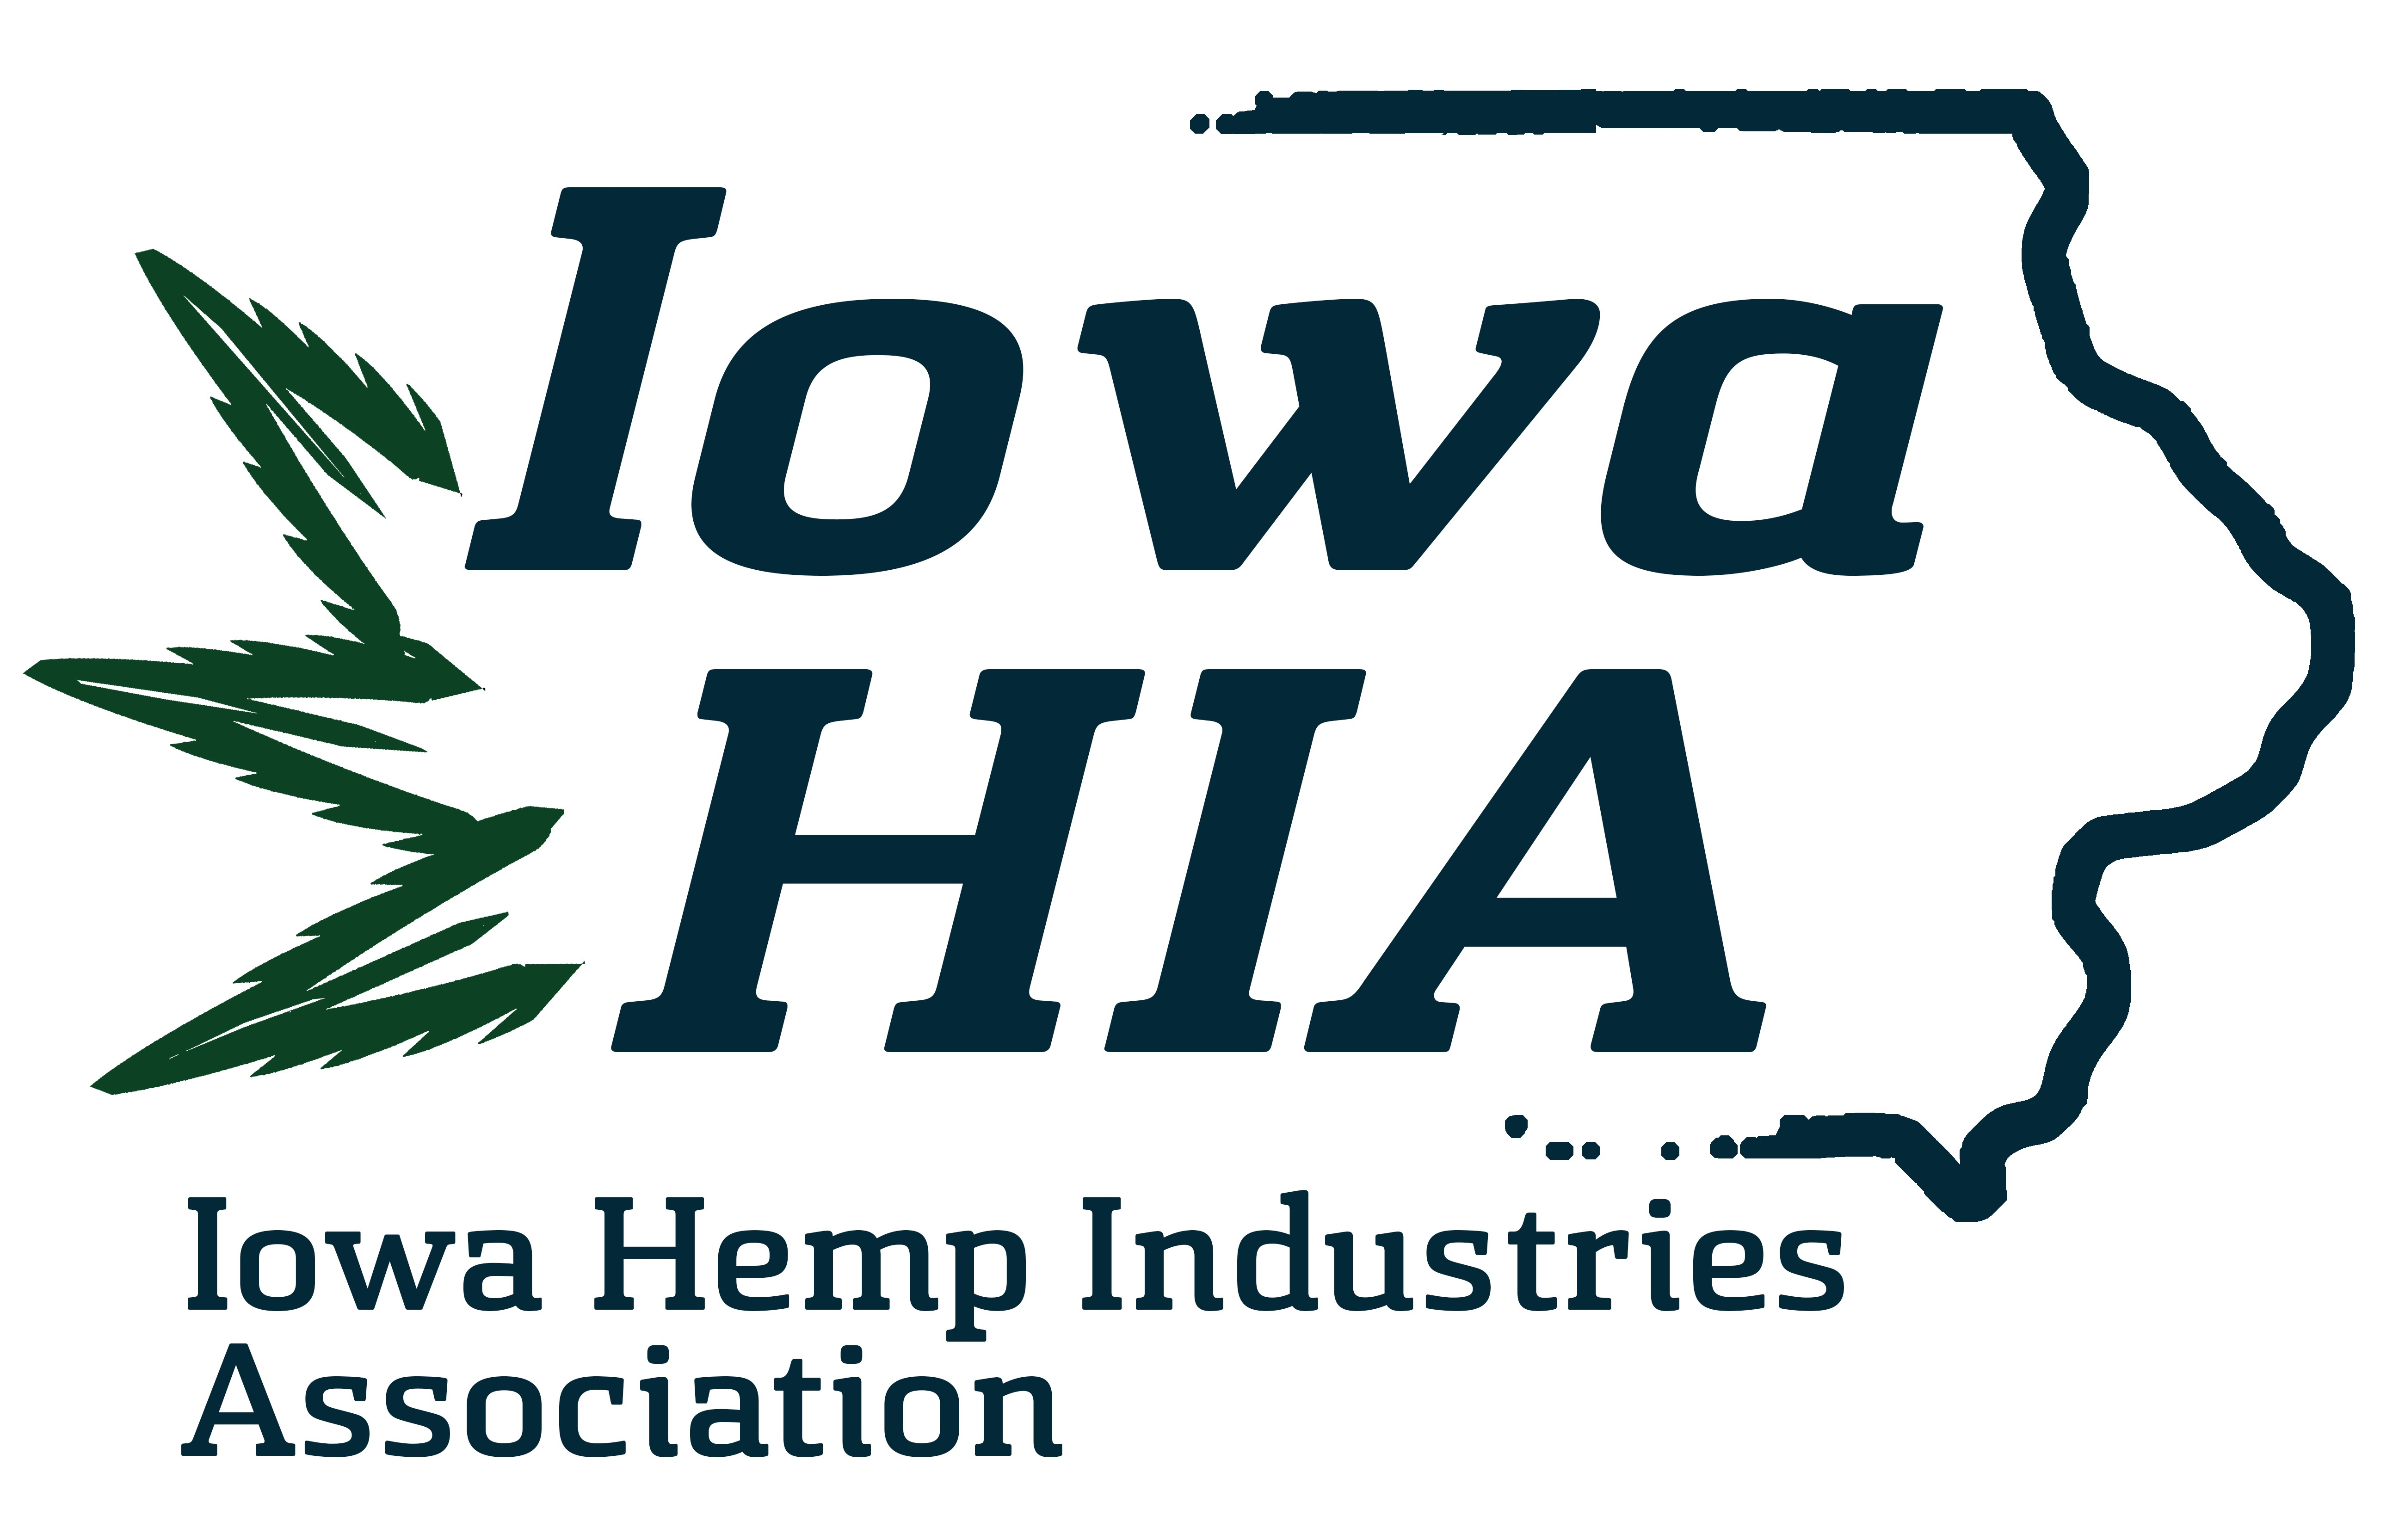 Iowa Hemp Industries Association